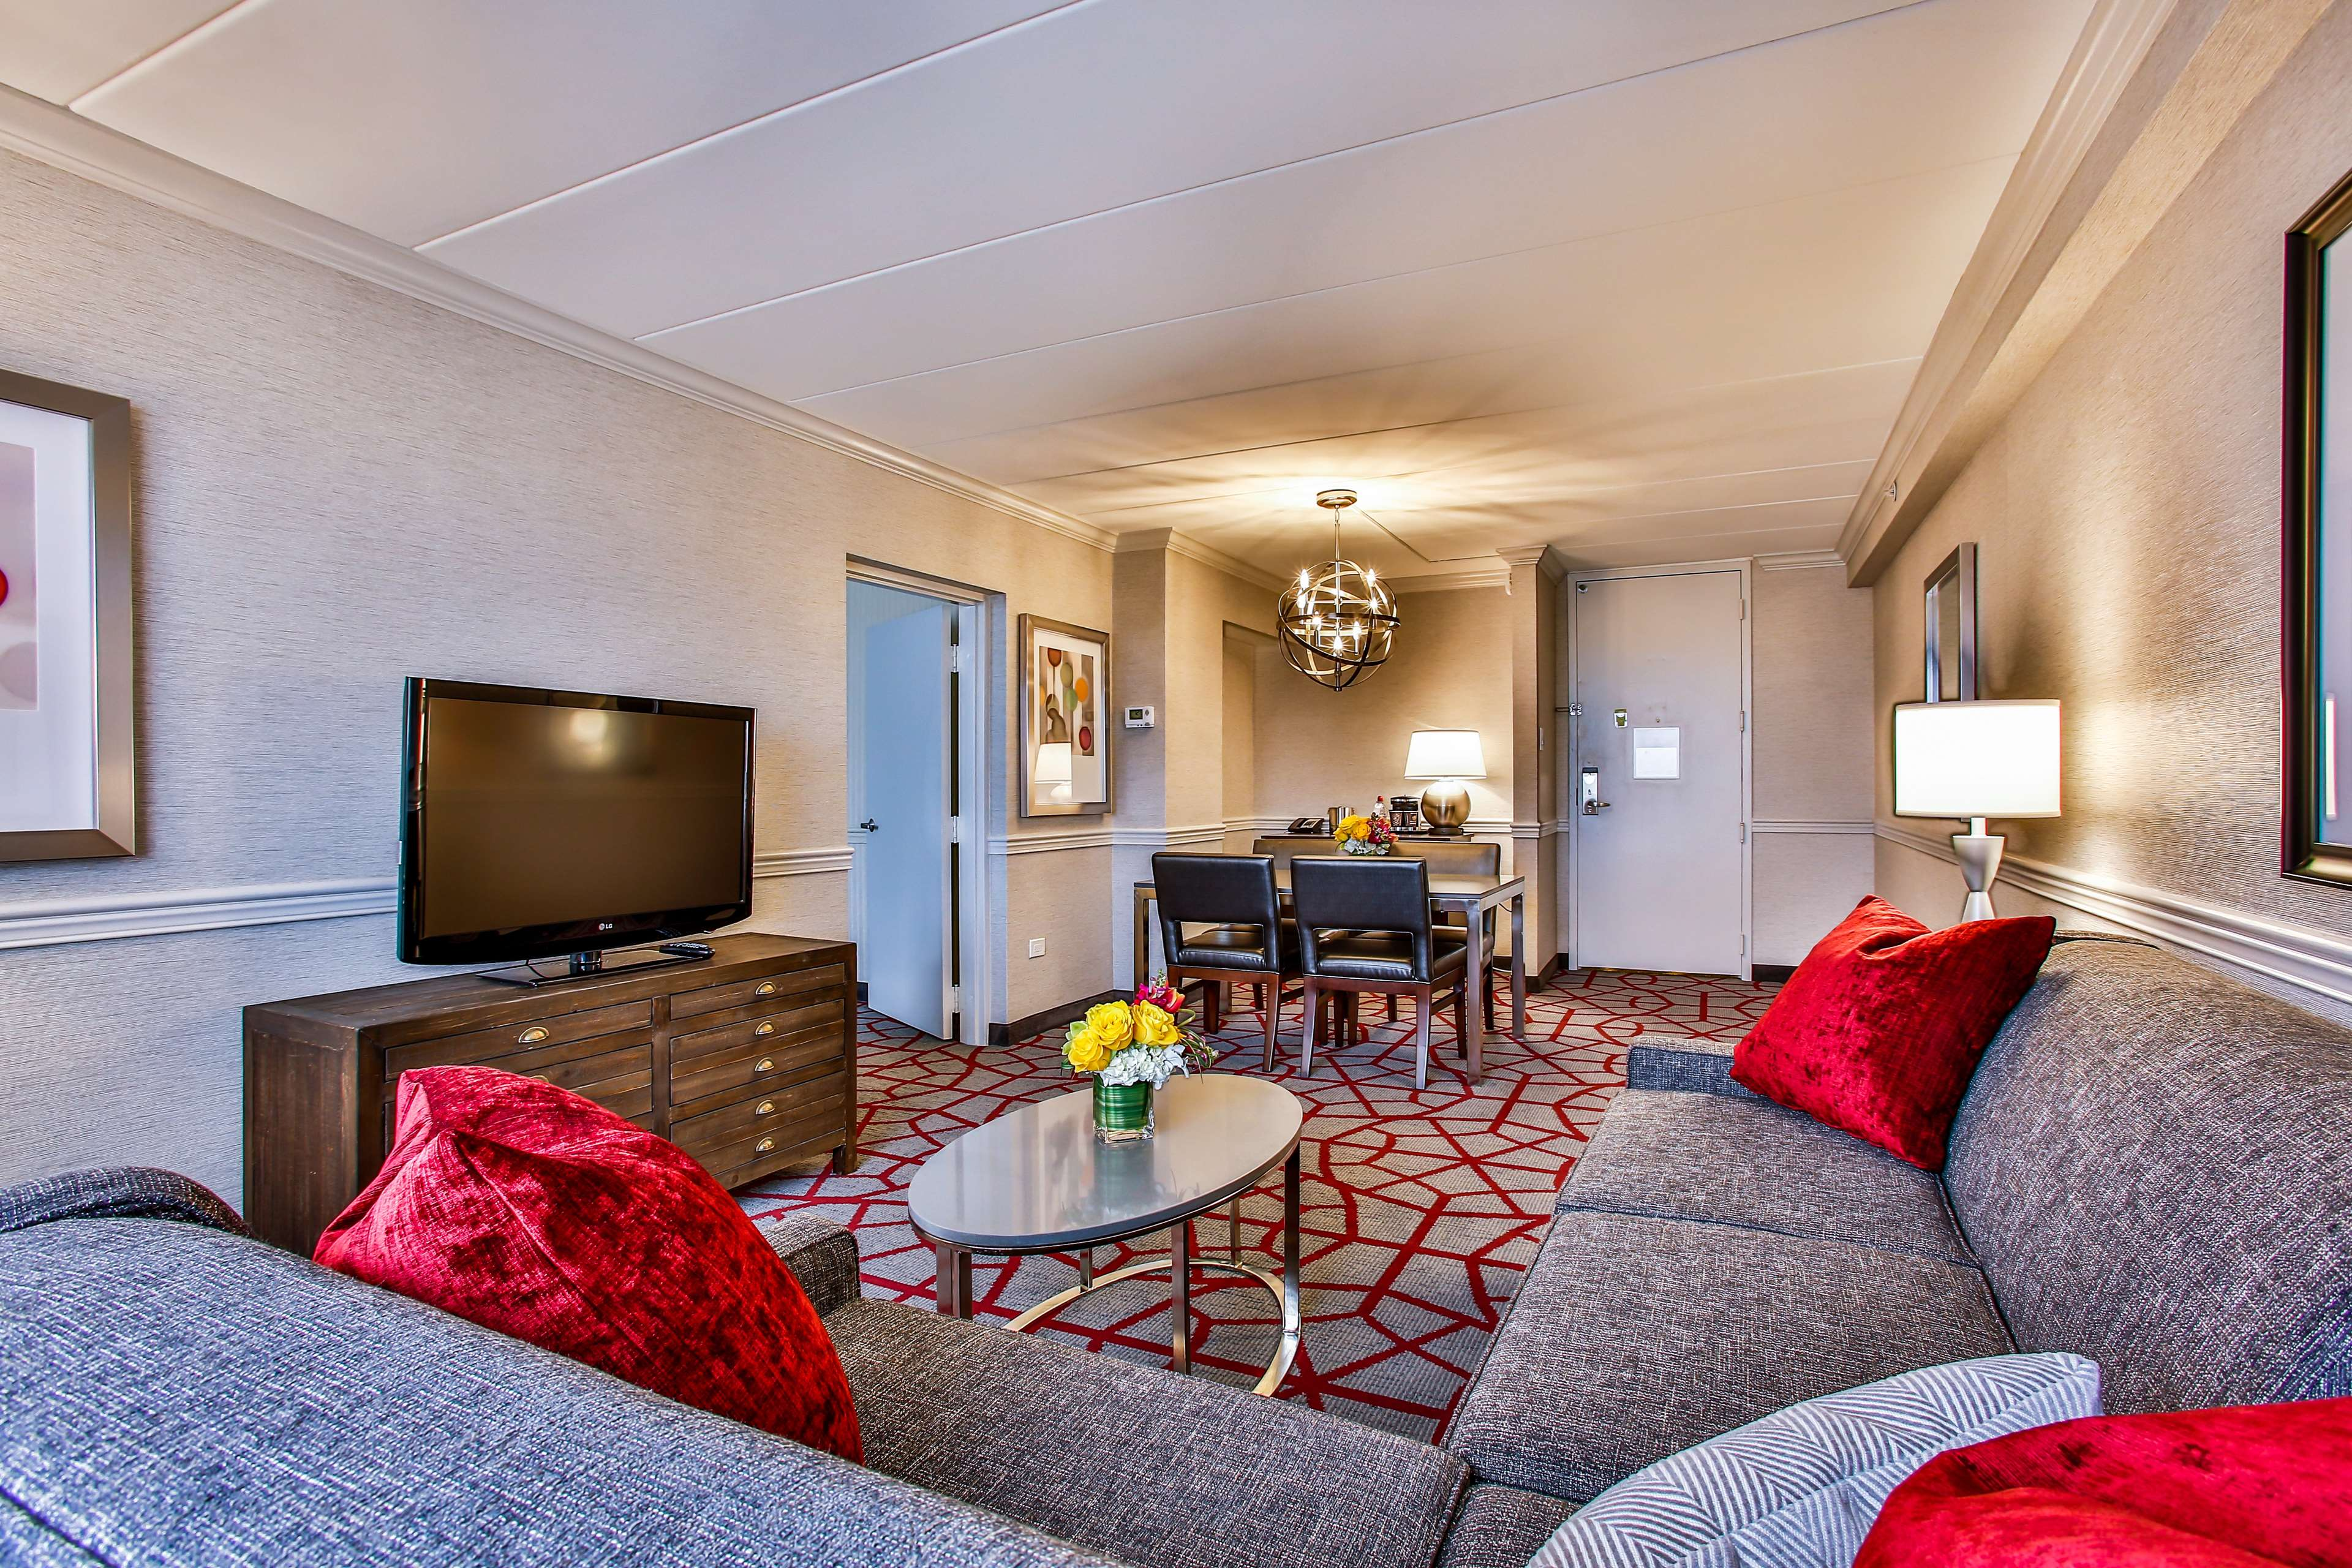 DoubleTree by Hilton Hotel Chicago - Alsip image 29